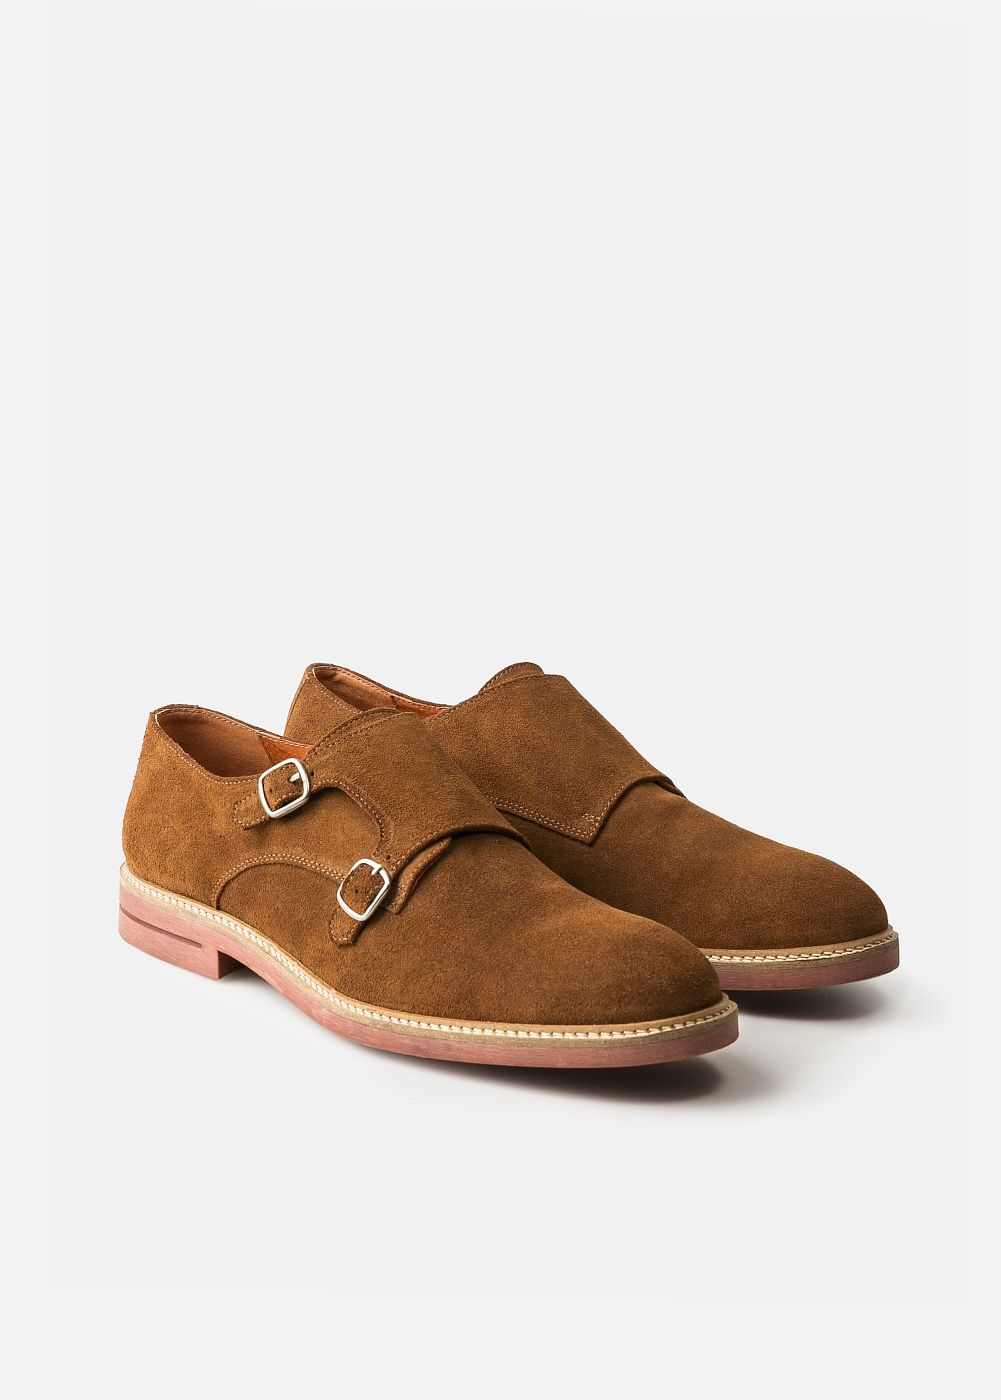 Suede monk-strap shoes - Men | MANGO Man USA